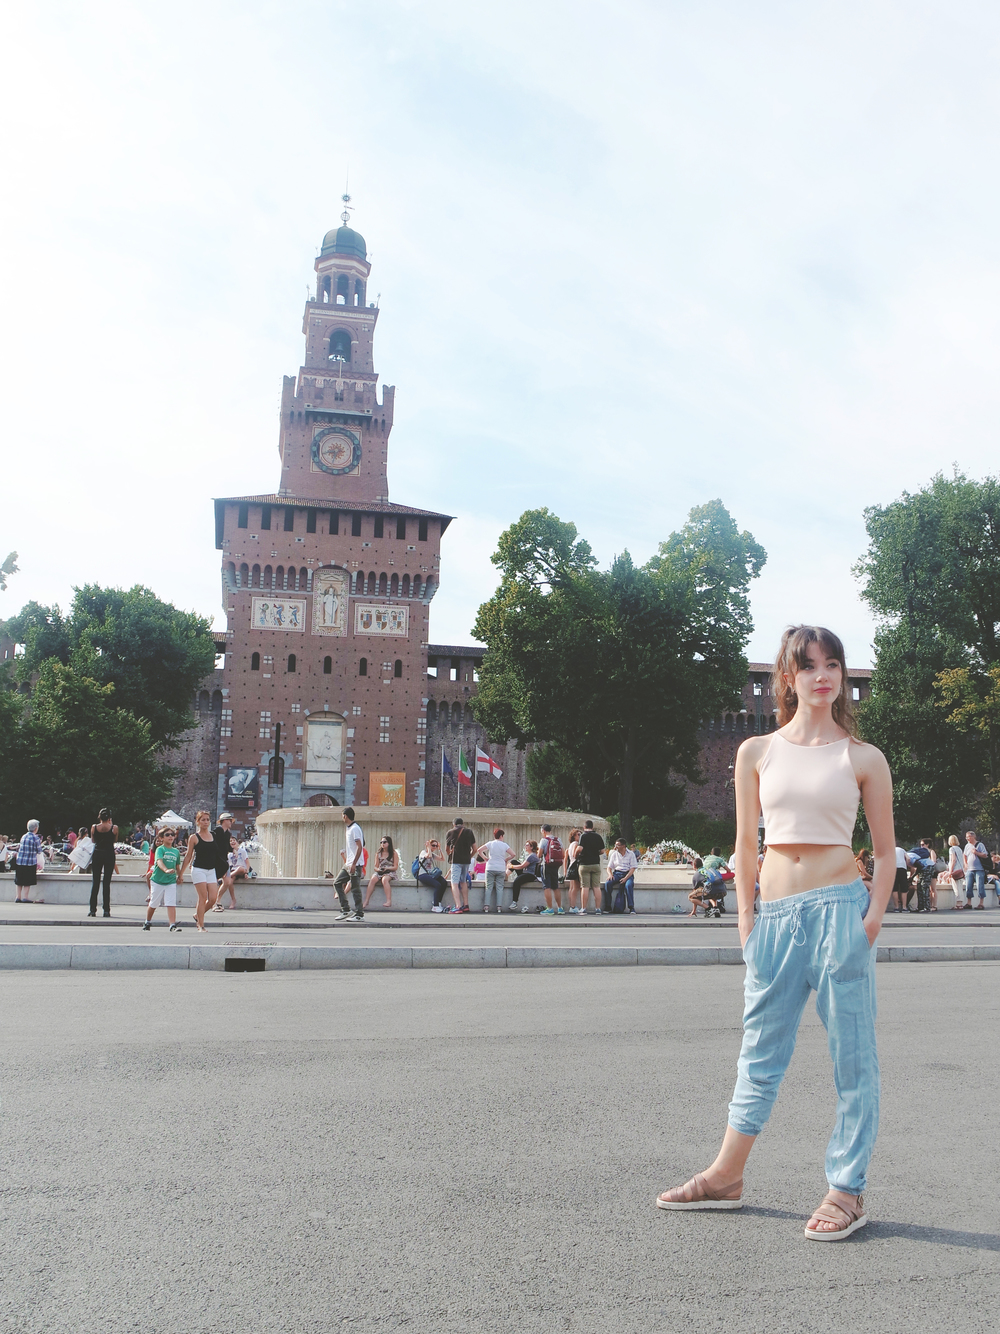 In front of the Castello Sforzesco.